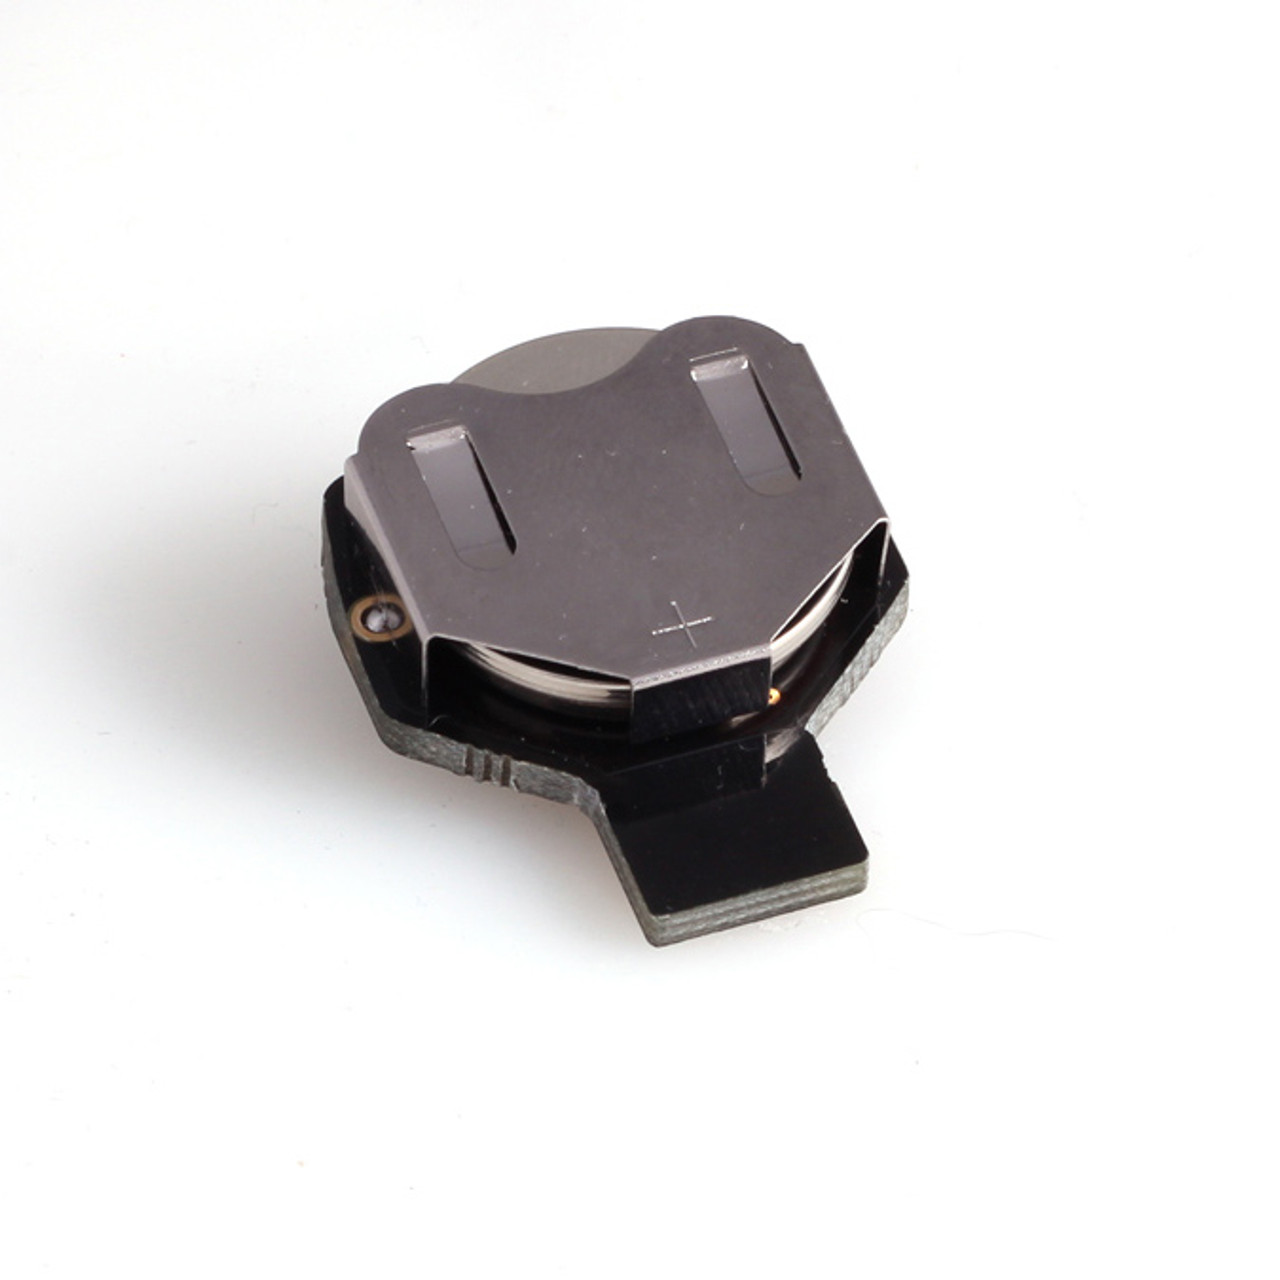 USB Charger 1.0 for LIR2450 Lithium-ion batteries